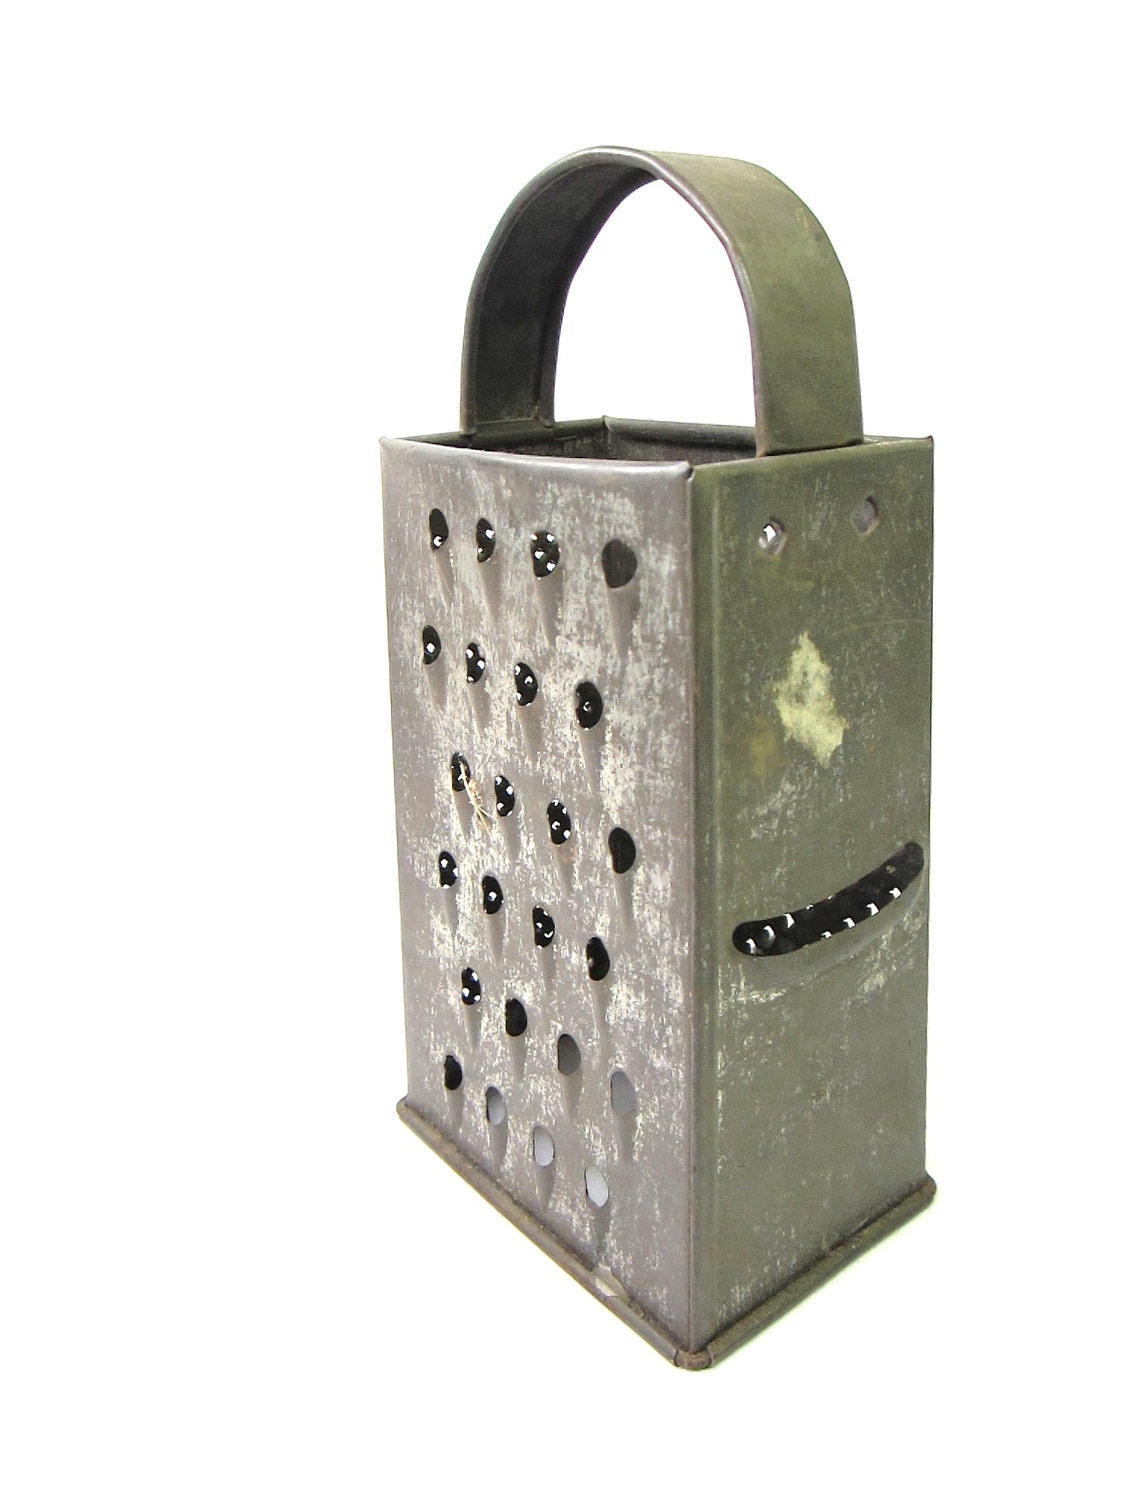 Antique Metal Grater Or Shredder Country By Theoldtimejunkshop